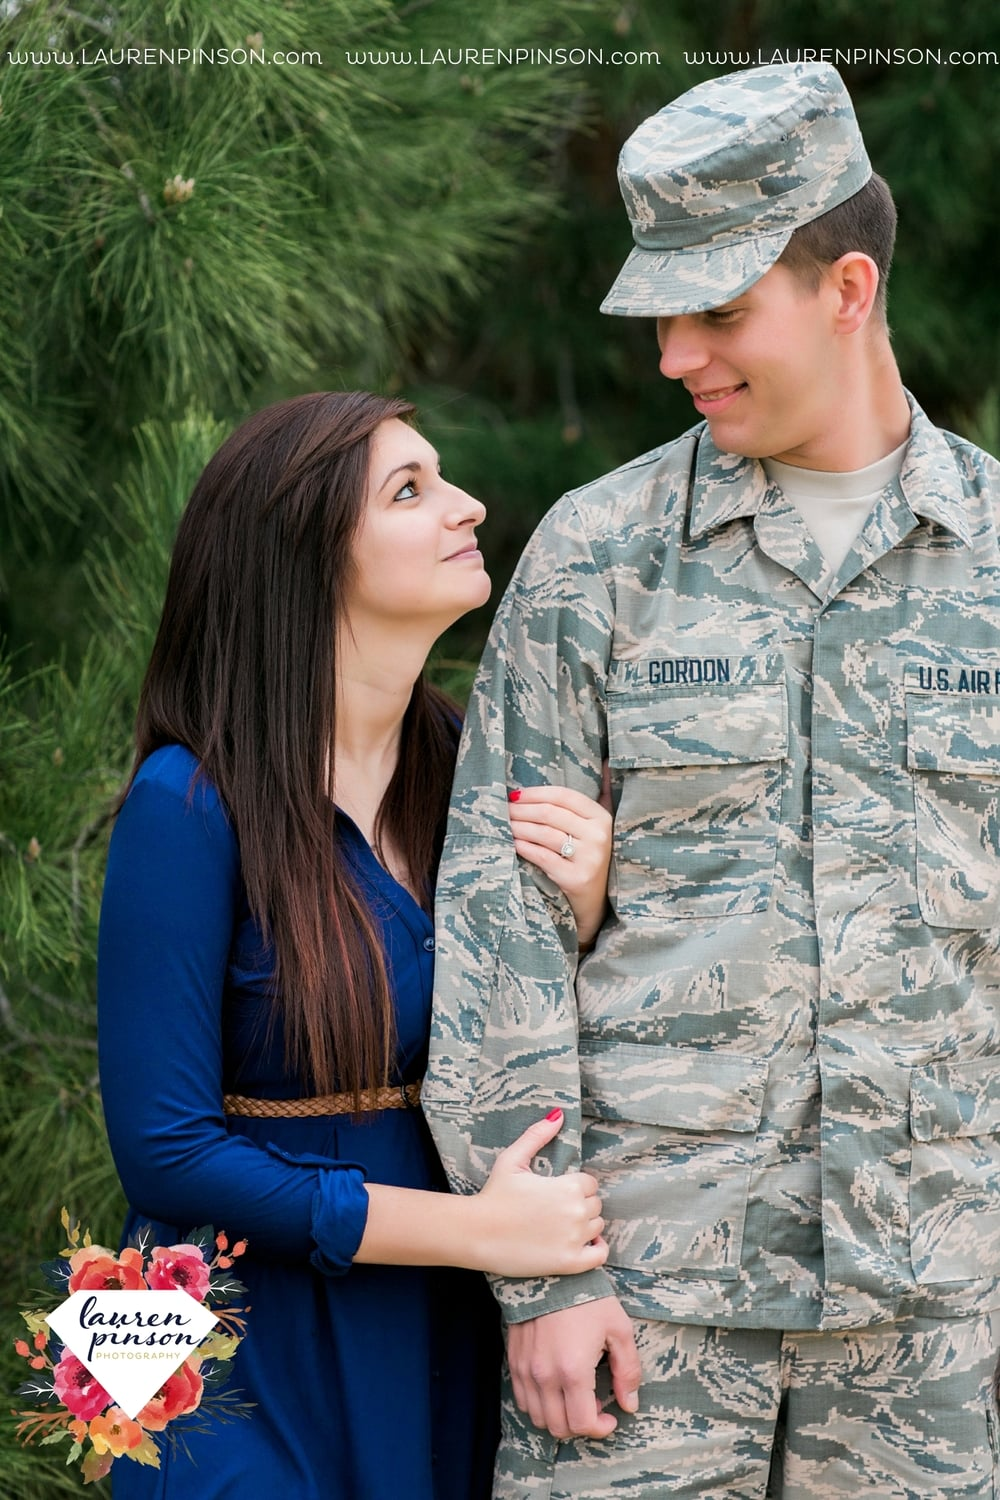 sheppard-afb-wichita-falls-engagement-session-airmen-in-uniform-abu-airplanes-bride-engagement-ring-texas-air-force-base_1997.jpg